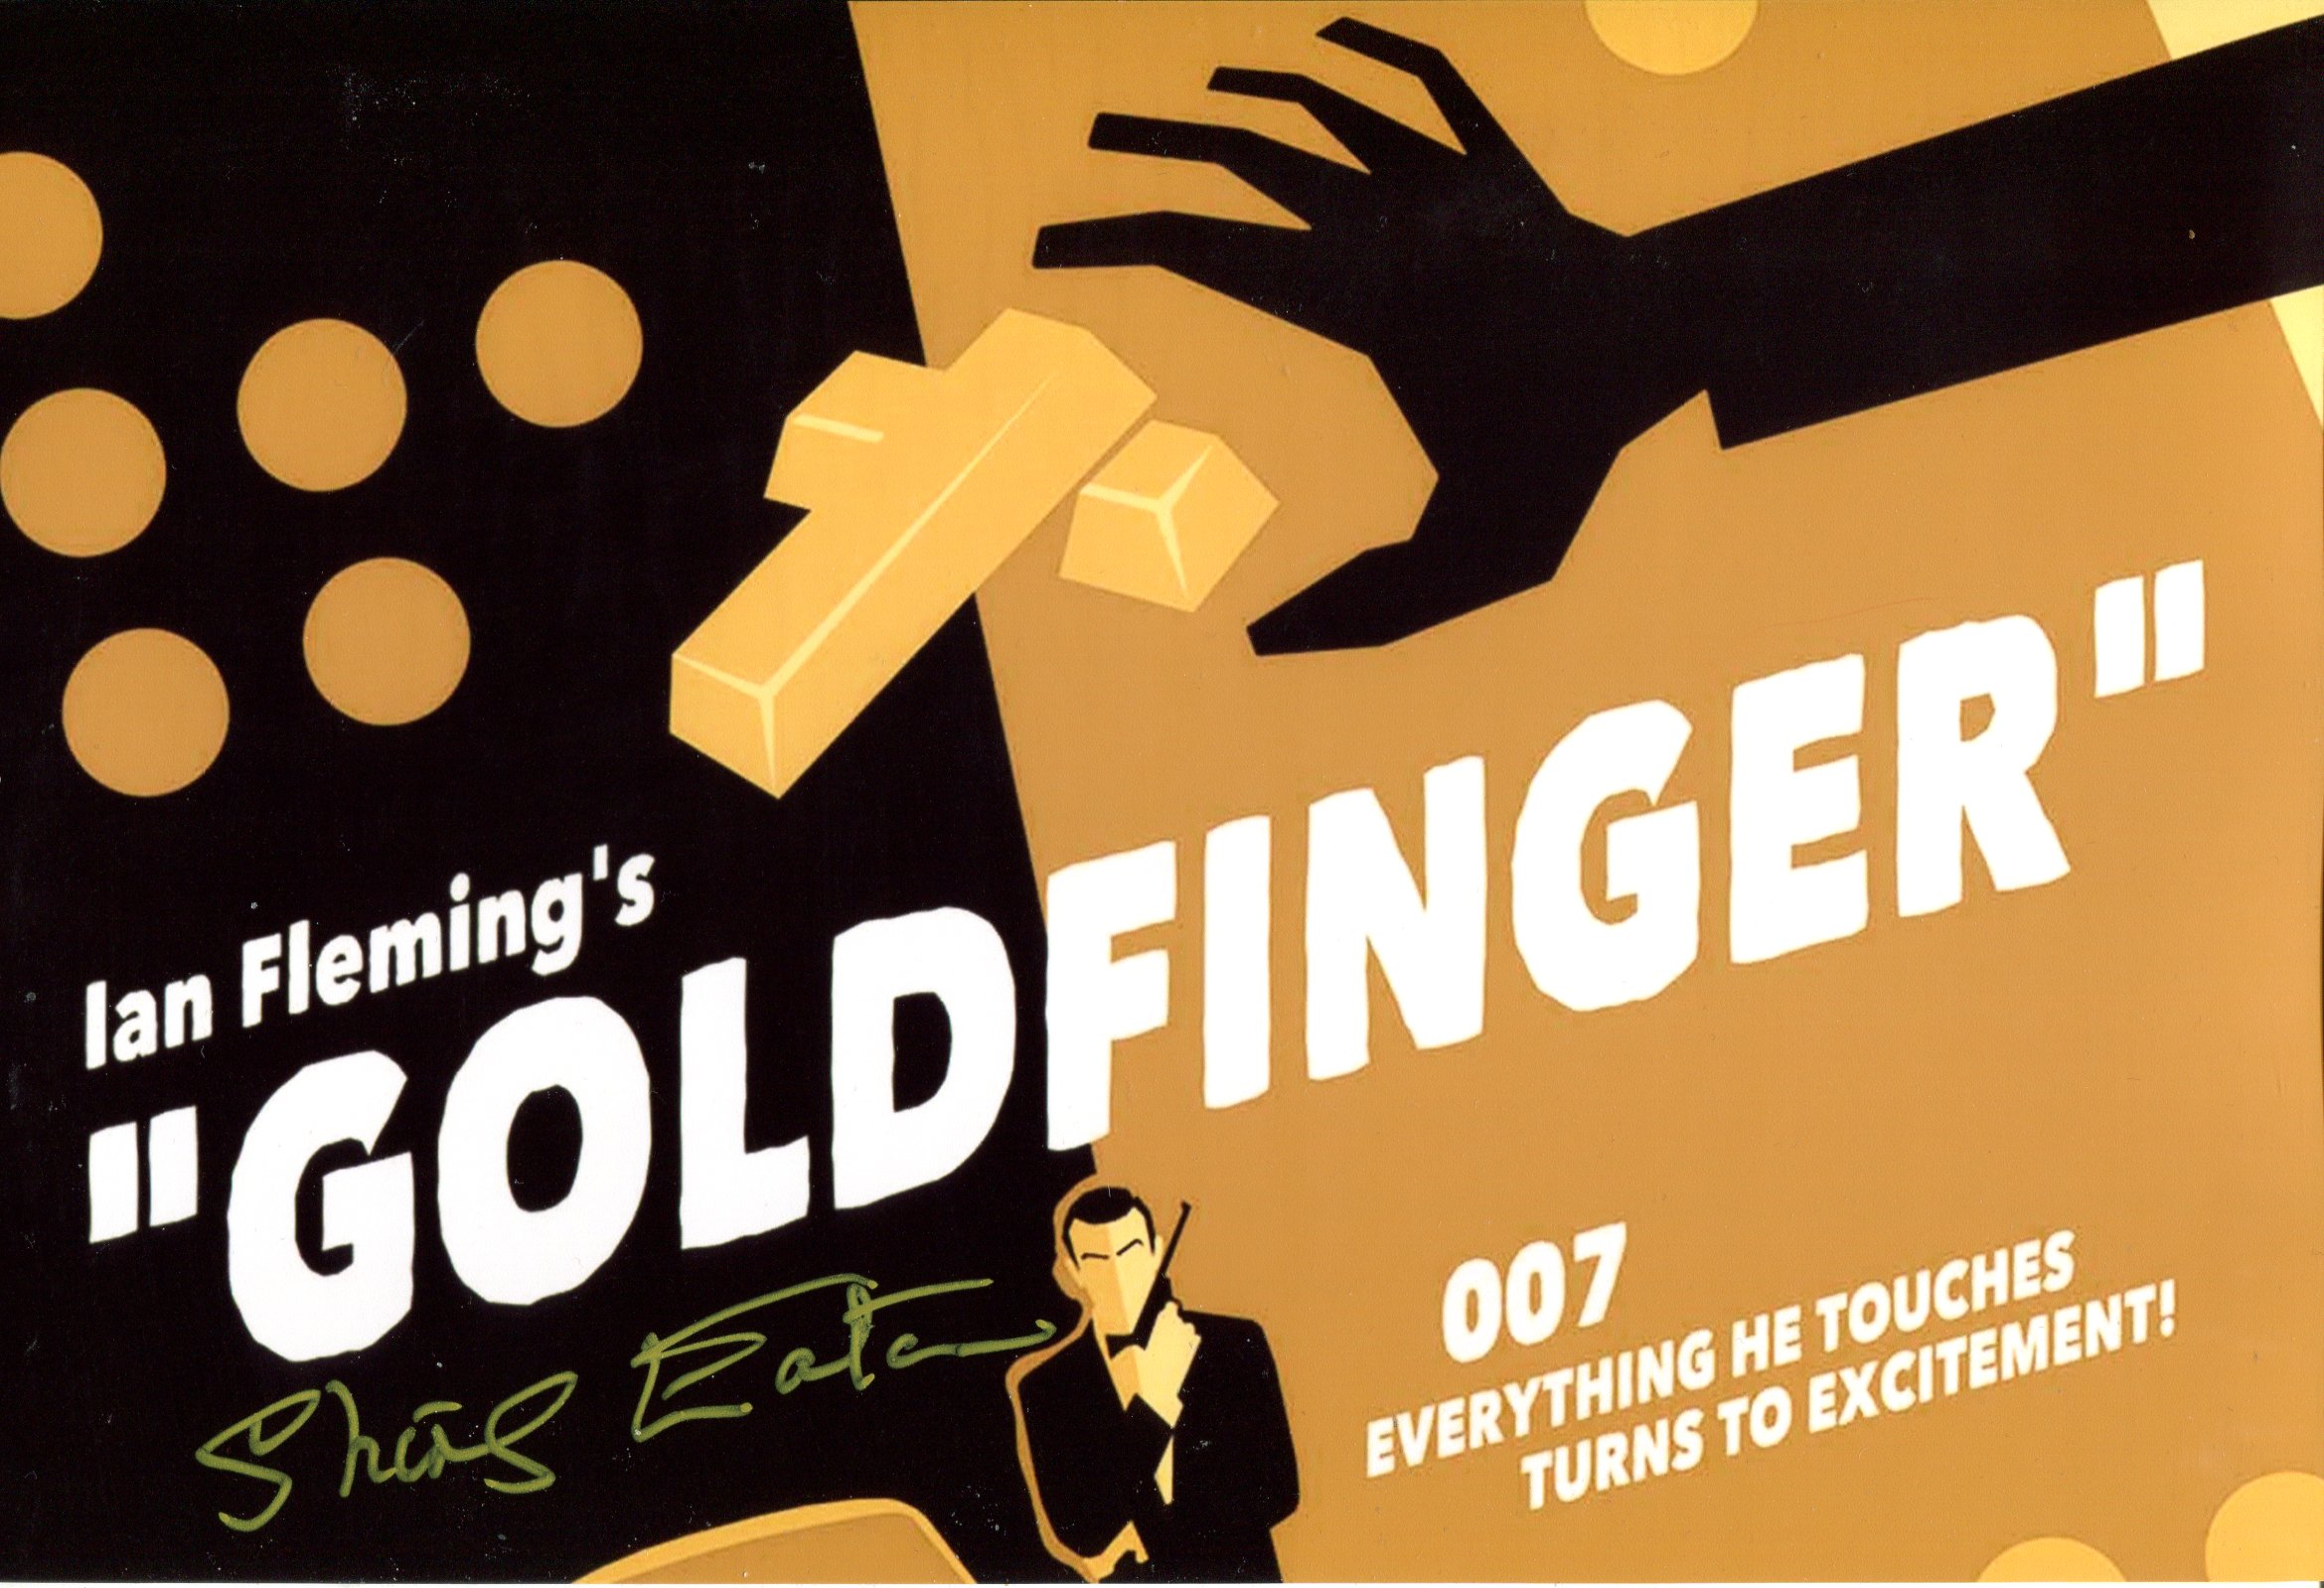 007 Bond movie Goldfinger 8x12 photo signed by Bond girl Shirley Eaton. Good condition. All